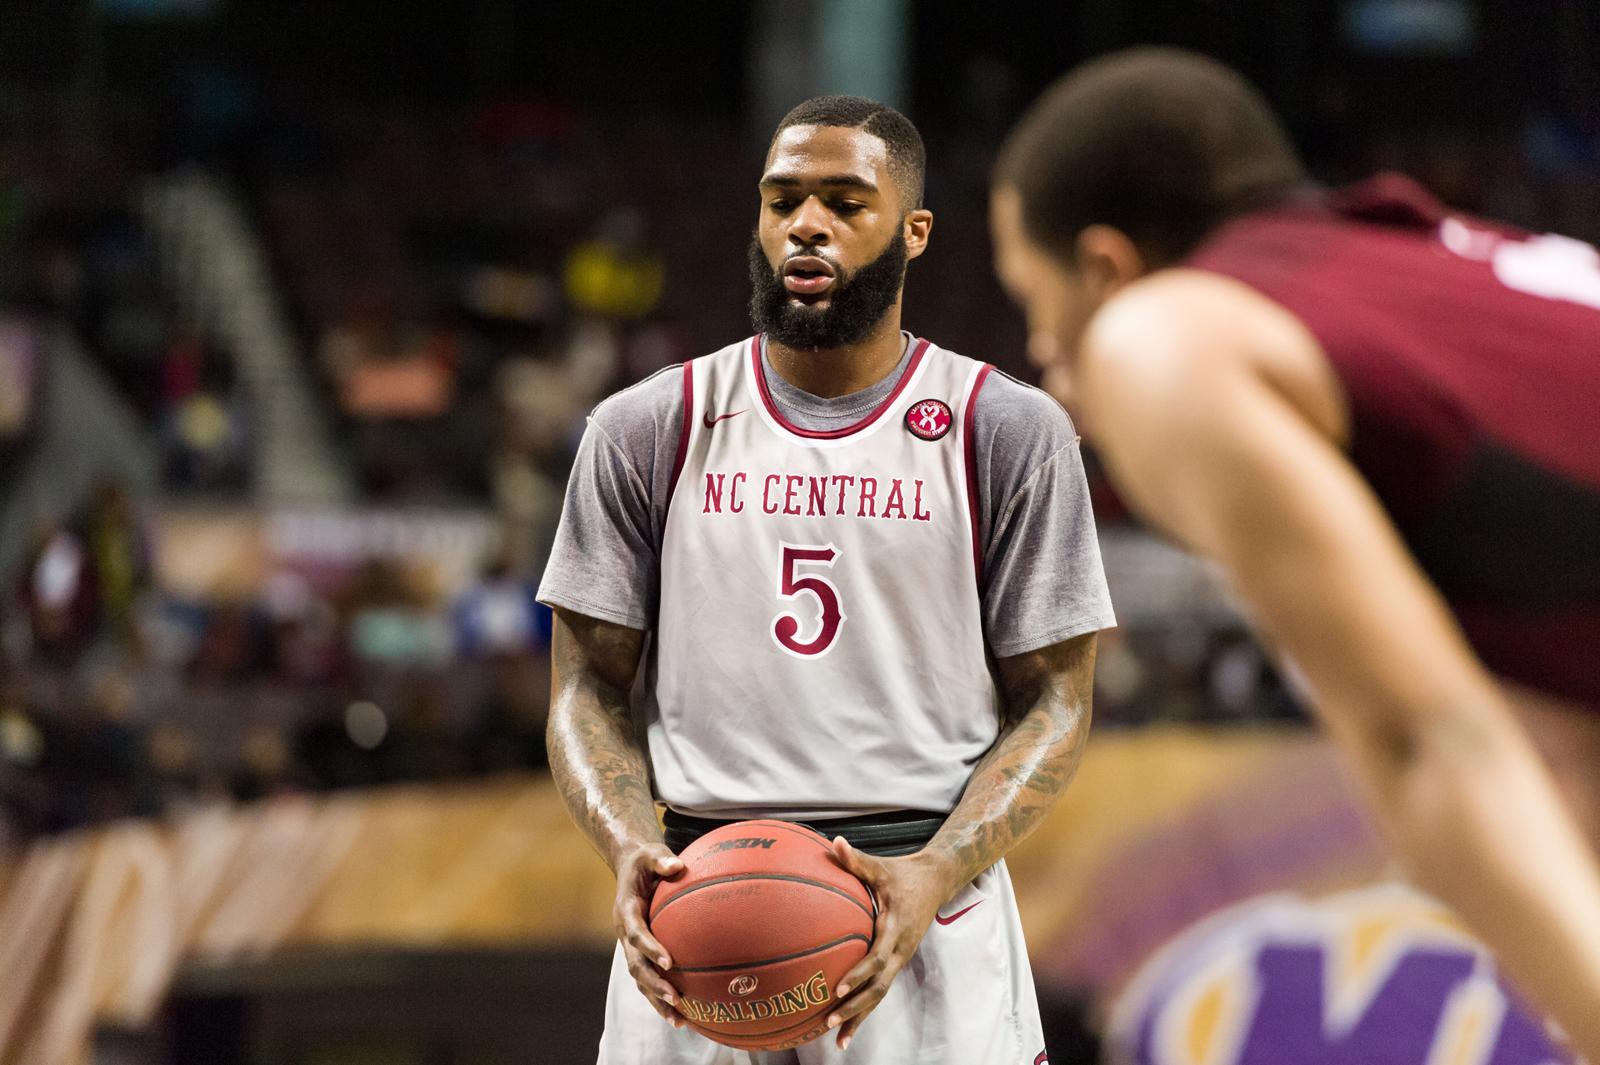 North Carolina Central Eagles forward Del'Vin Dickerson (5) sets up to take a free throw against the Maryland-Eastern Shore Hawks during the 2017 MEAC Tournament held at the Scope Arena in Norfolk, VA. North Carolina Central defeated Maryland Eastern Shore 77-49.